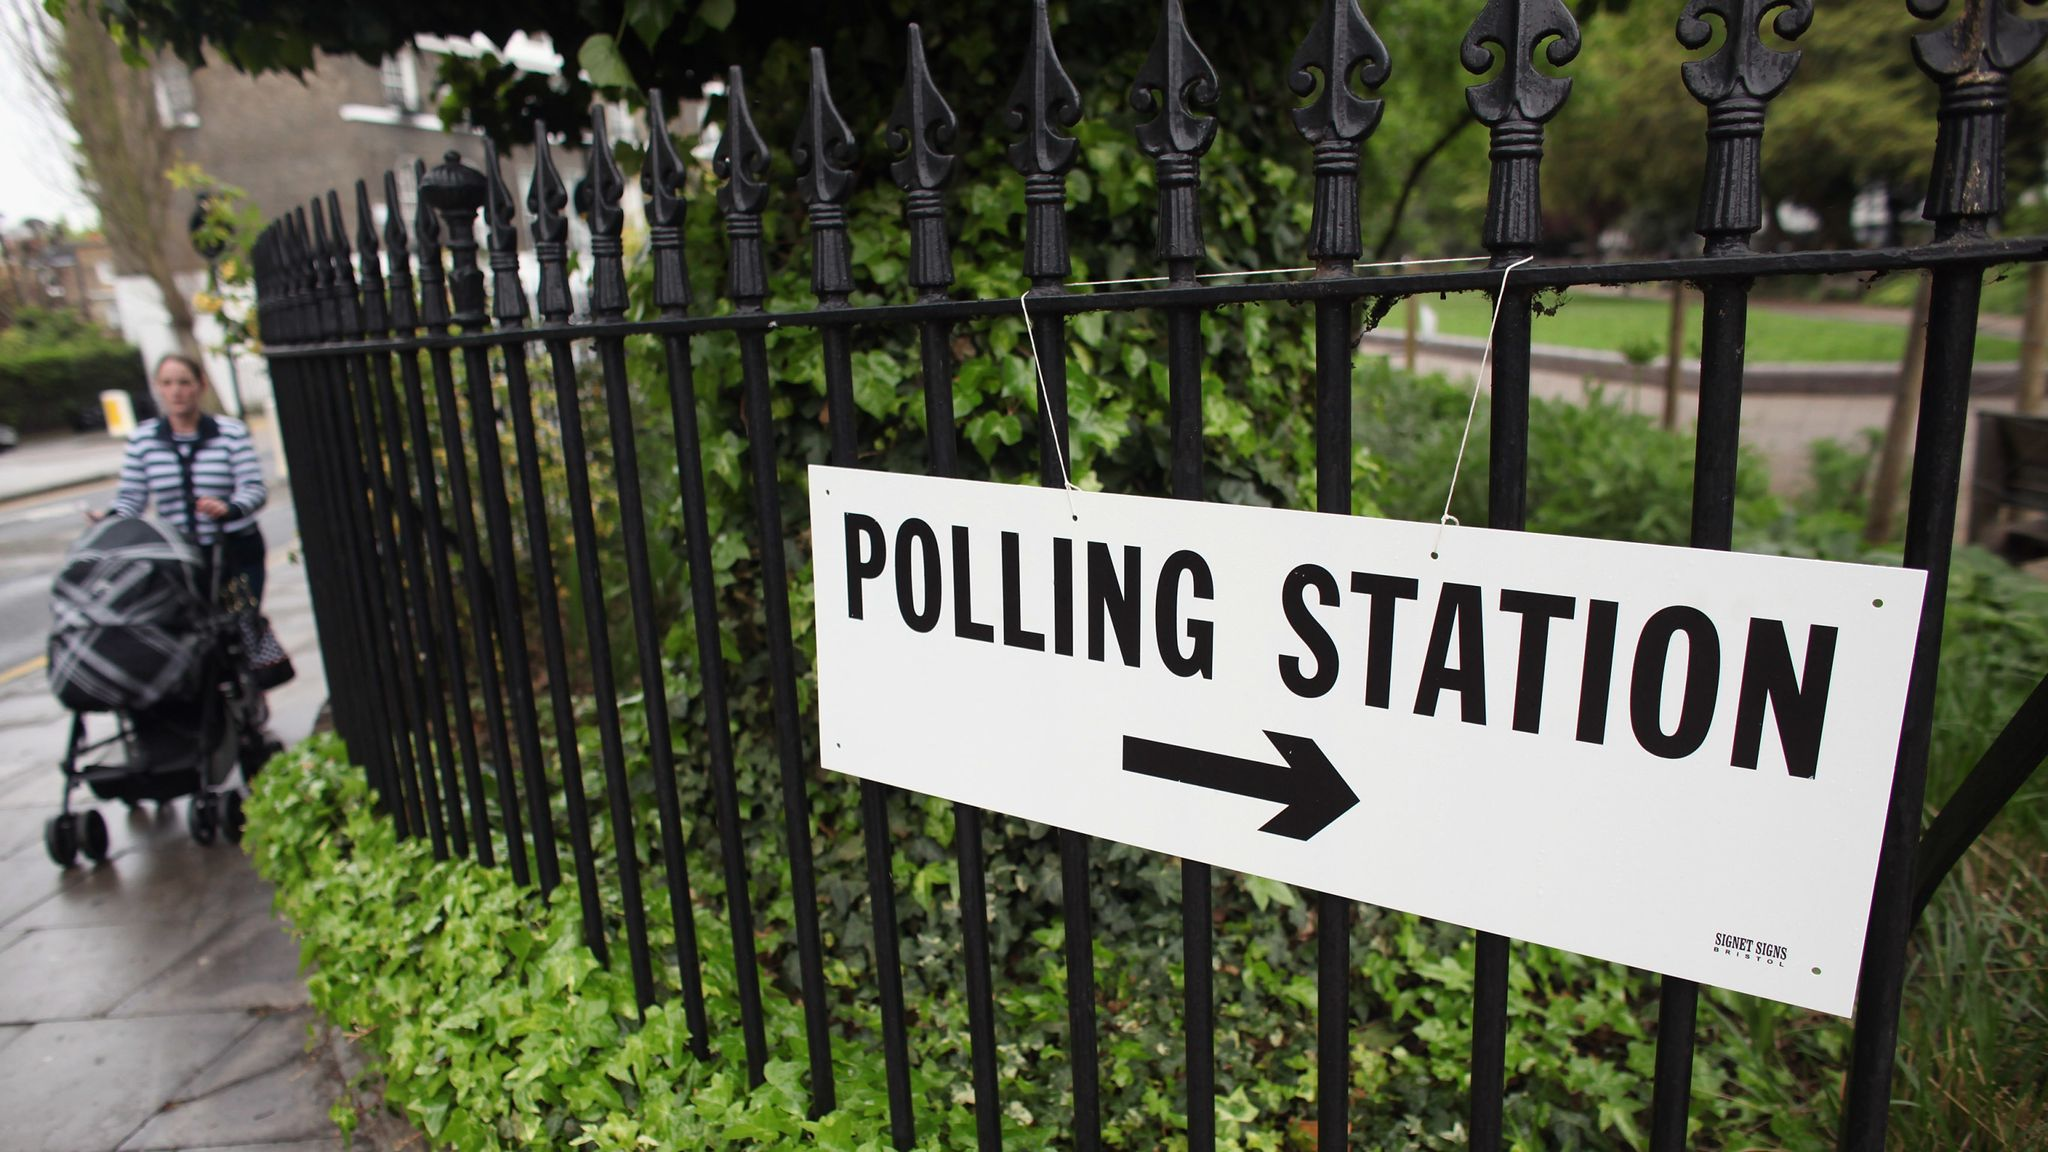 Sky Data poll: Majority of Britons want a general election when new PM is in place